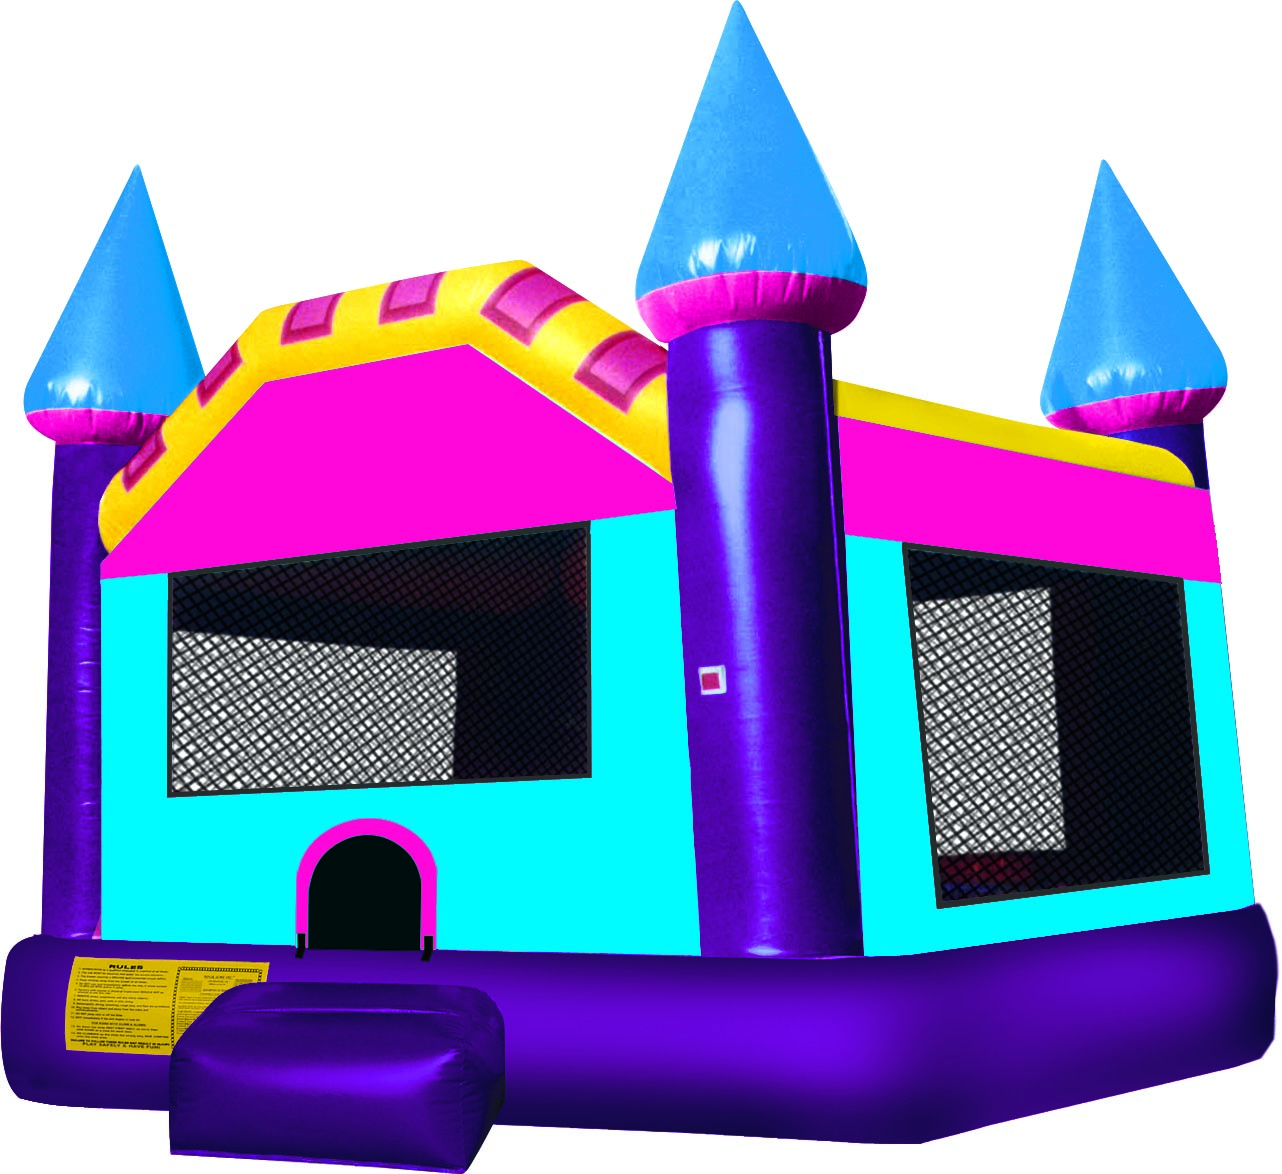 1282x1174 Bounce Houses, Water Slide Inflatables, Party Fun Greenville Sc By